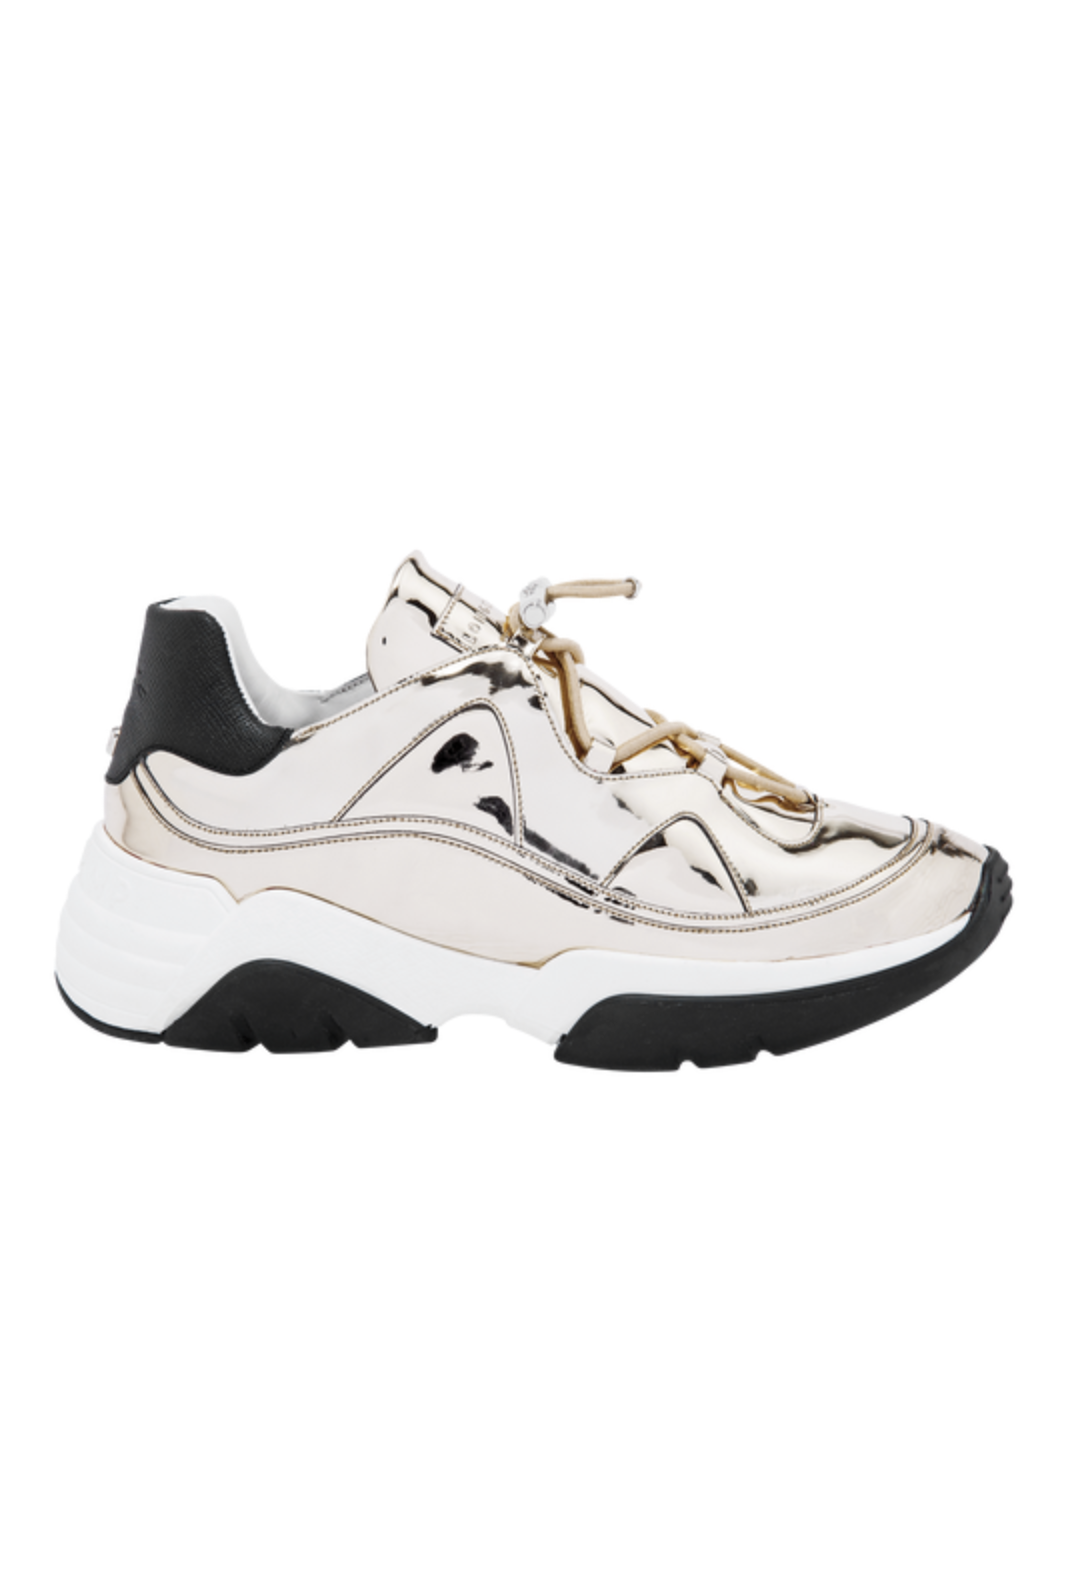 20 Chunky Sneakers for Women | Best of